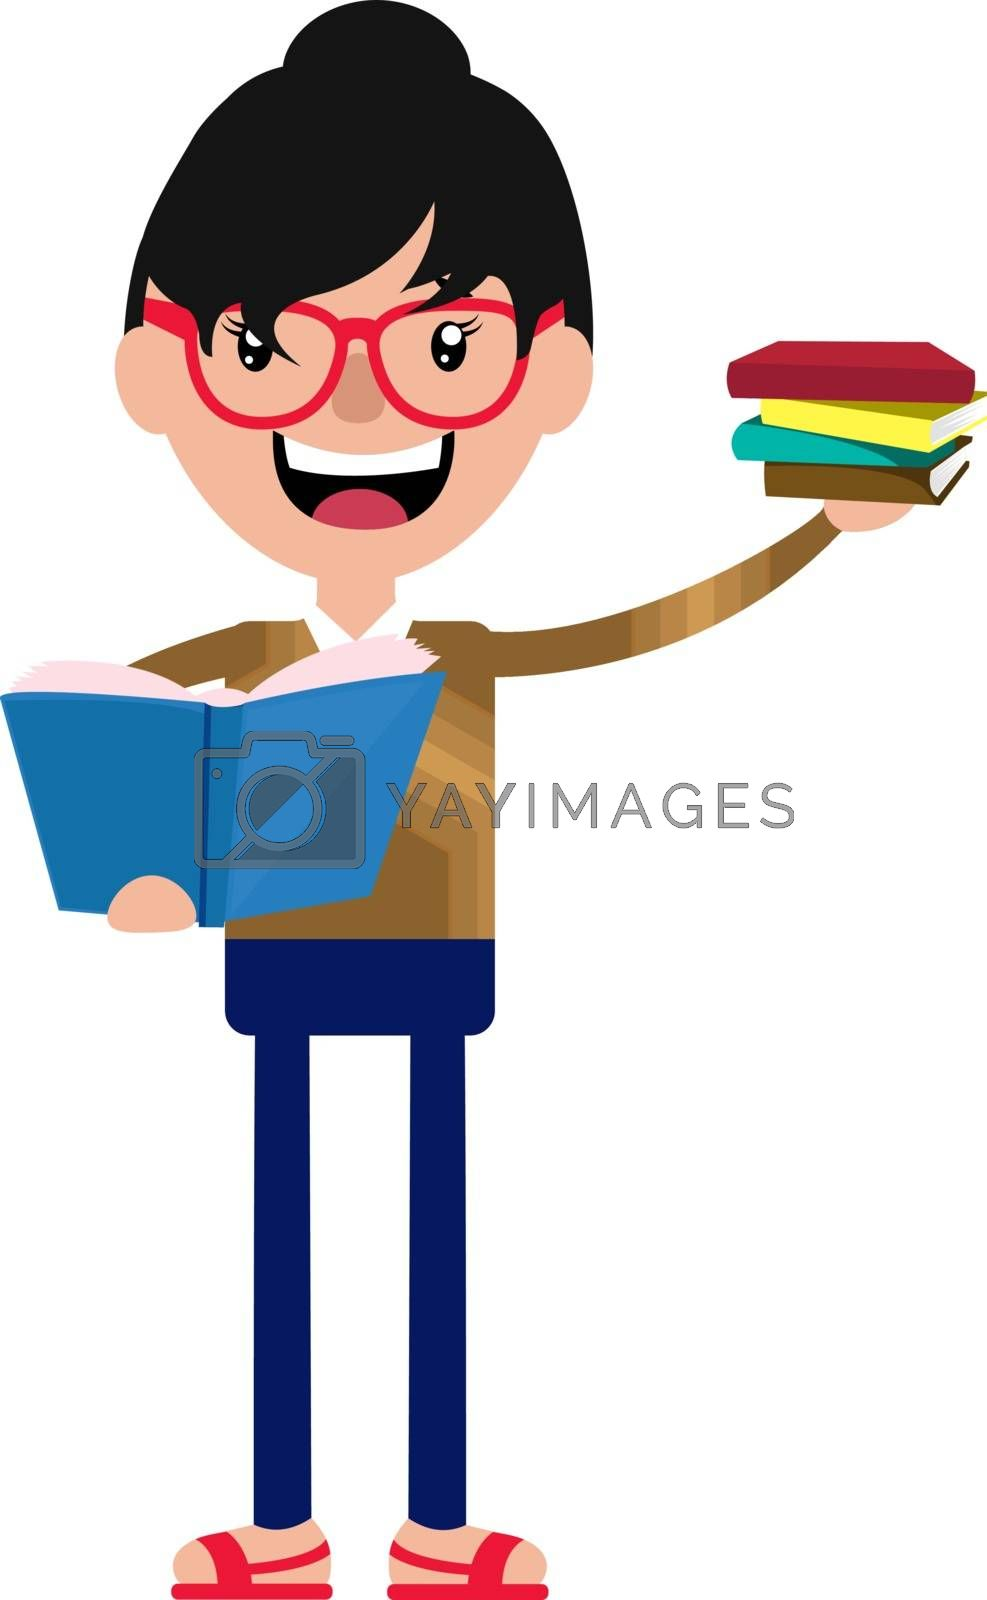 Royalty free image of Cheerful cartoon young woman holding some books illustration vec by Morphart